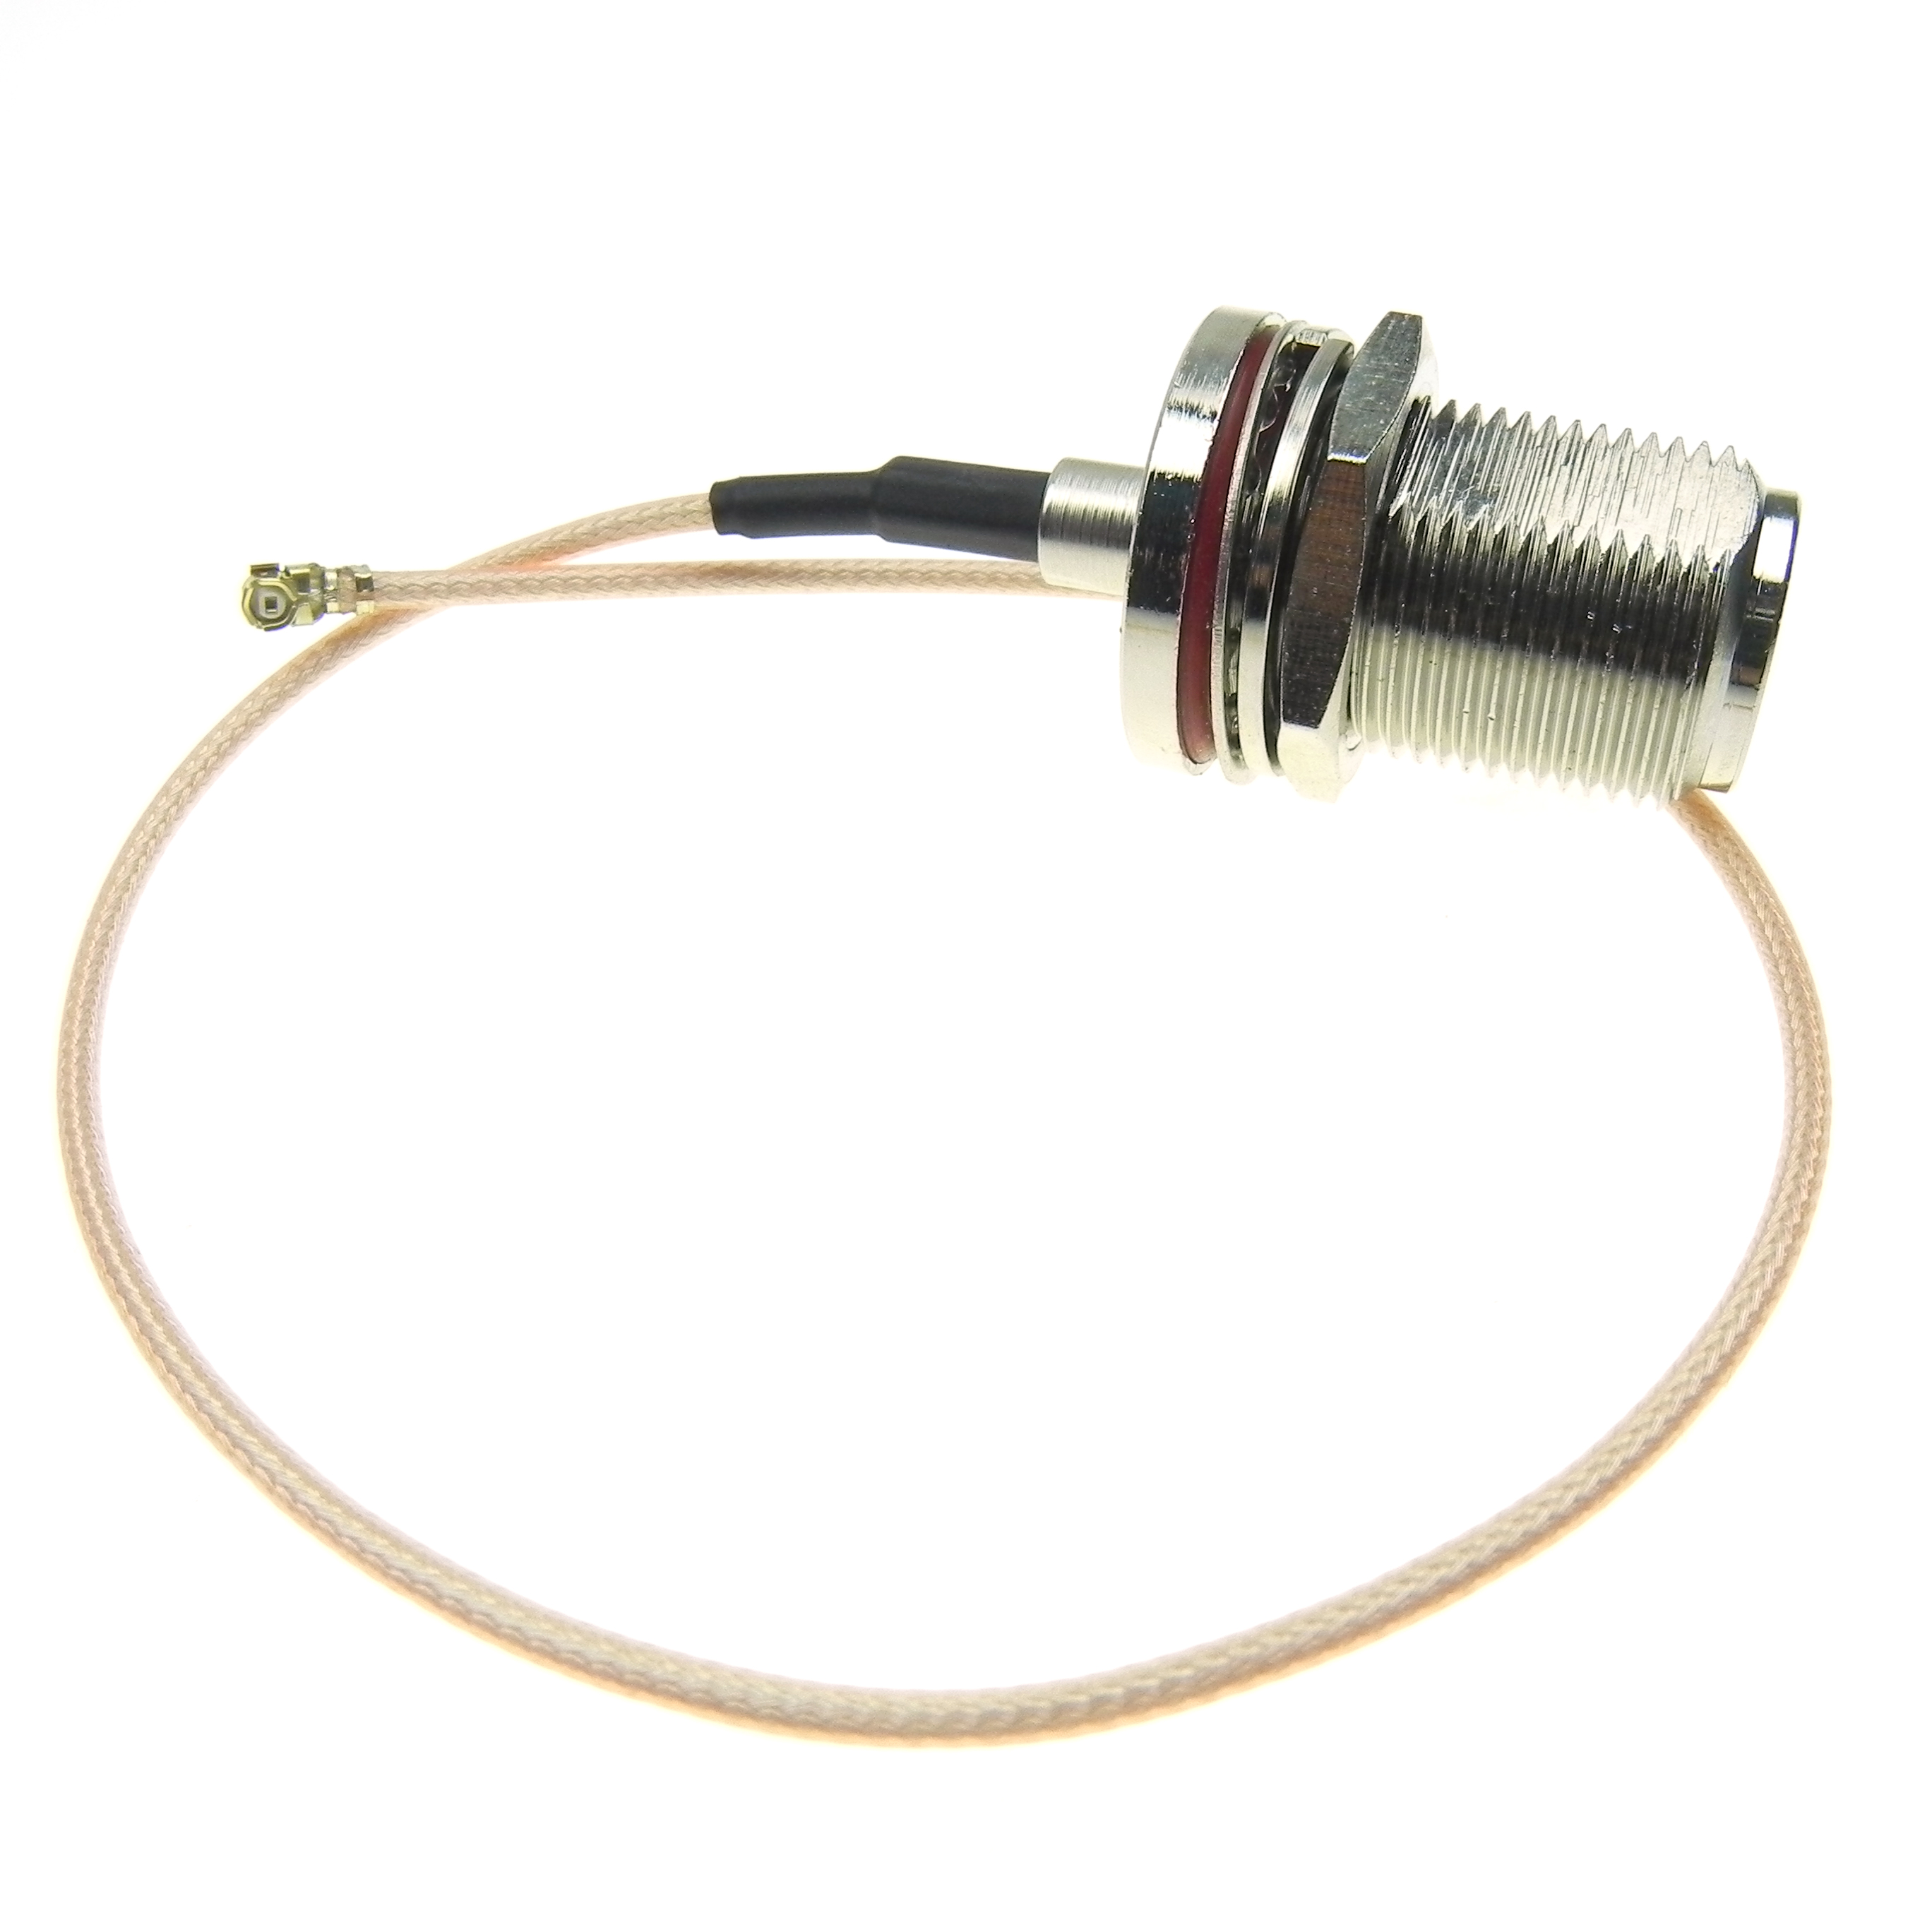 OEM ODM UHL to N-ky coaxial cable assembly